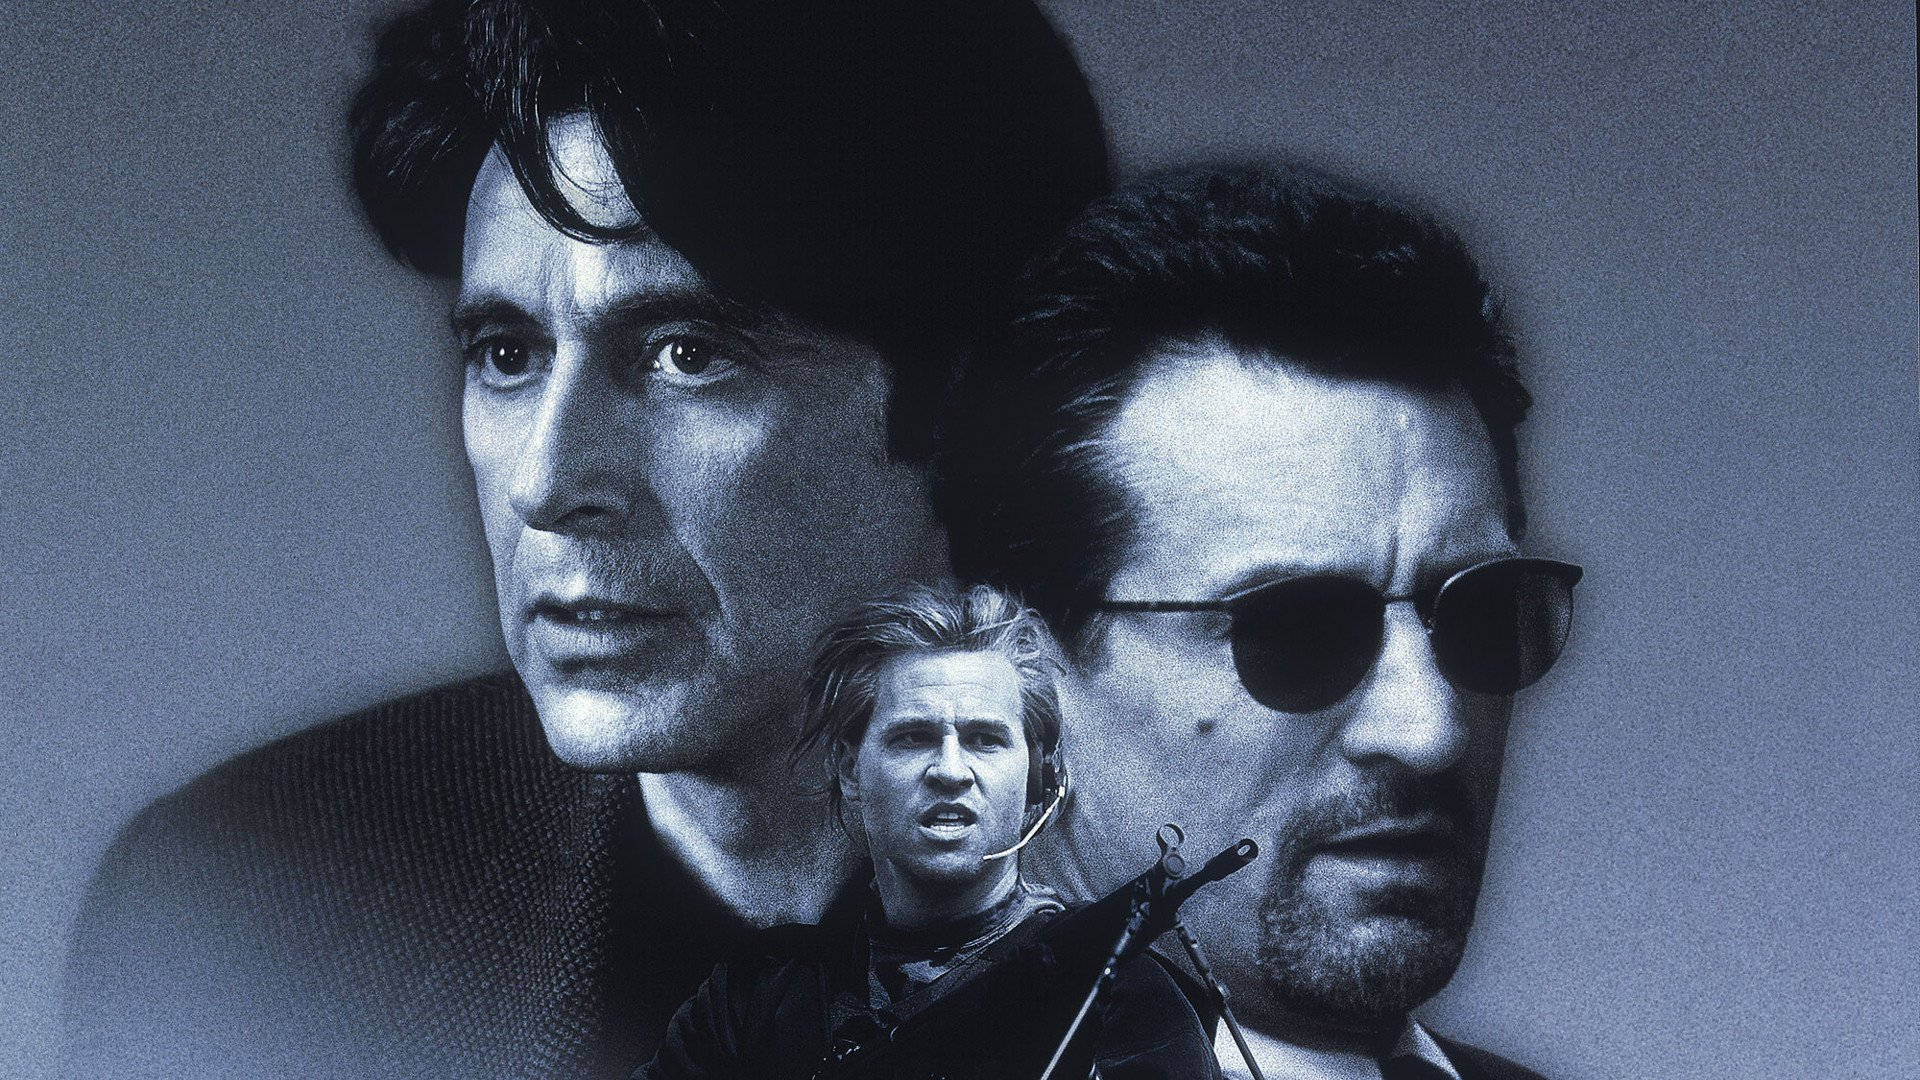 Heat.1995.BrRip.720p.x264.YIFY.mkv.mp4